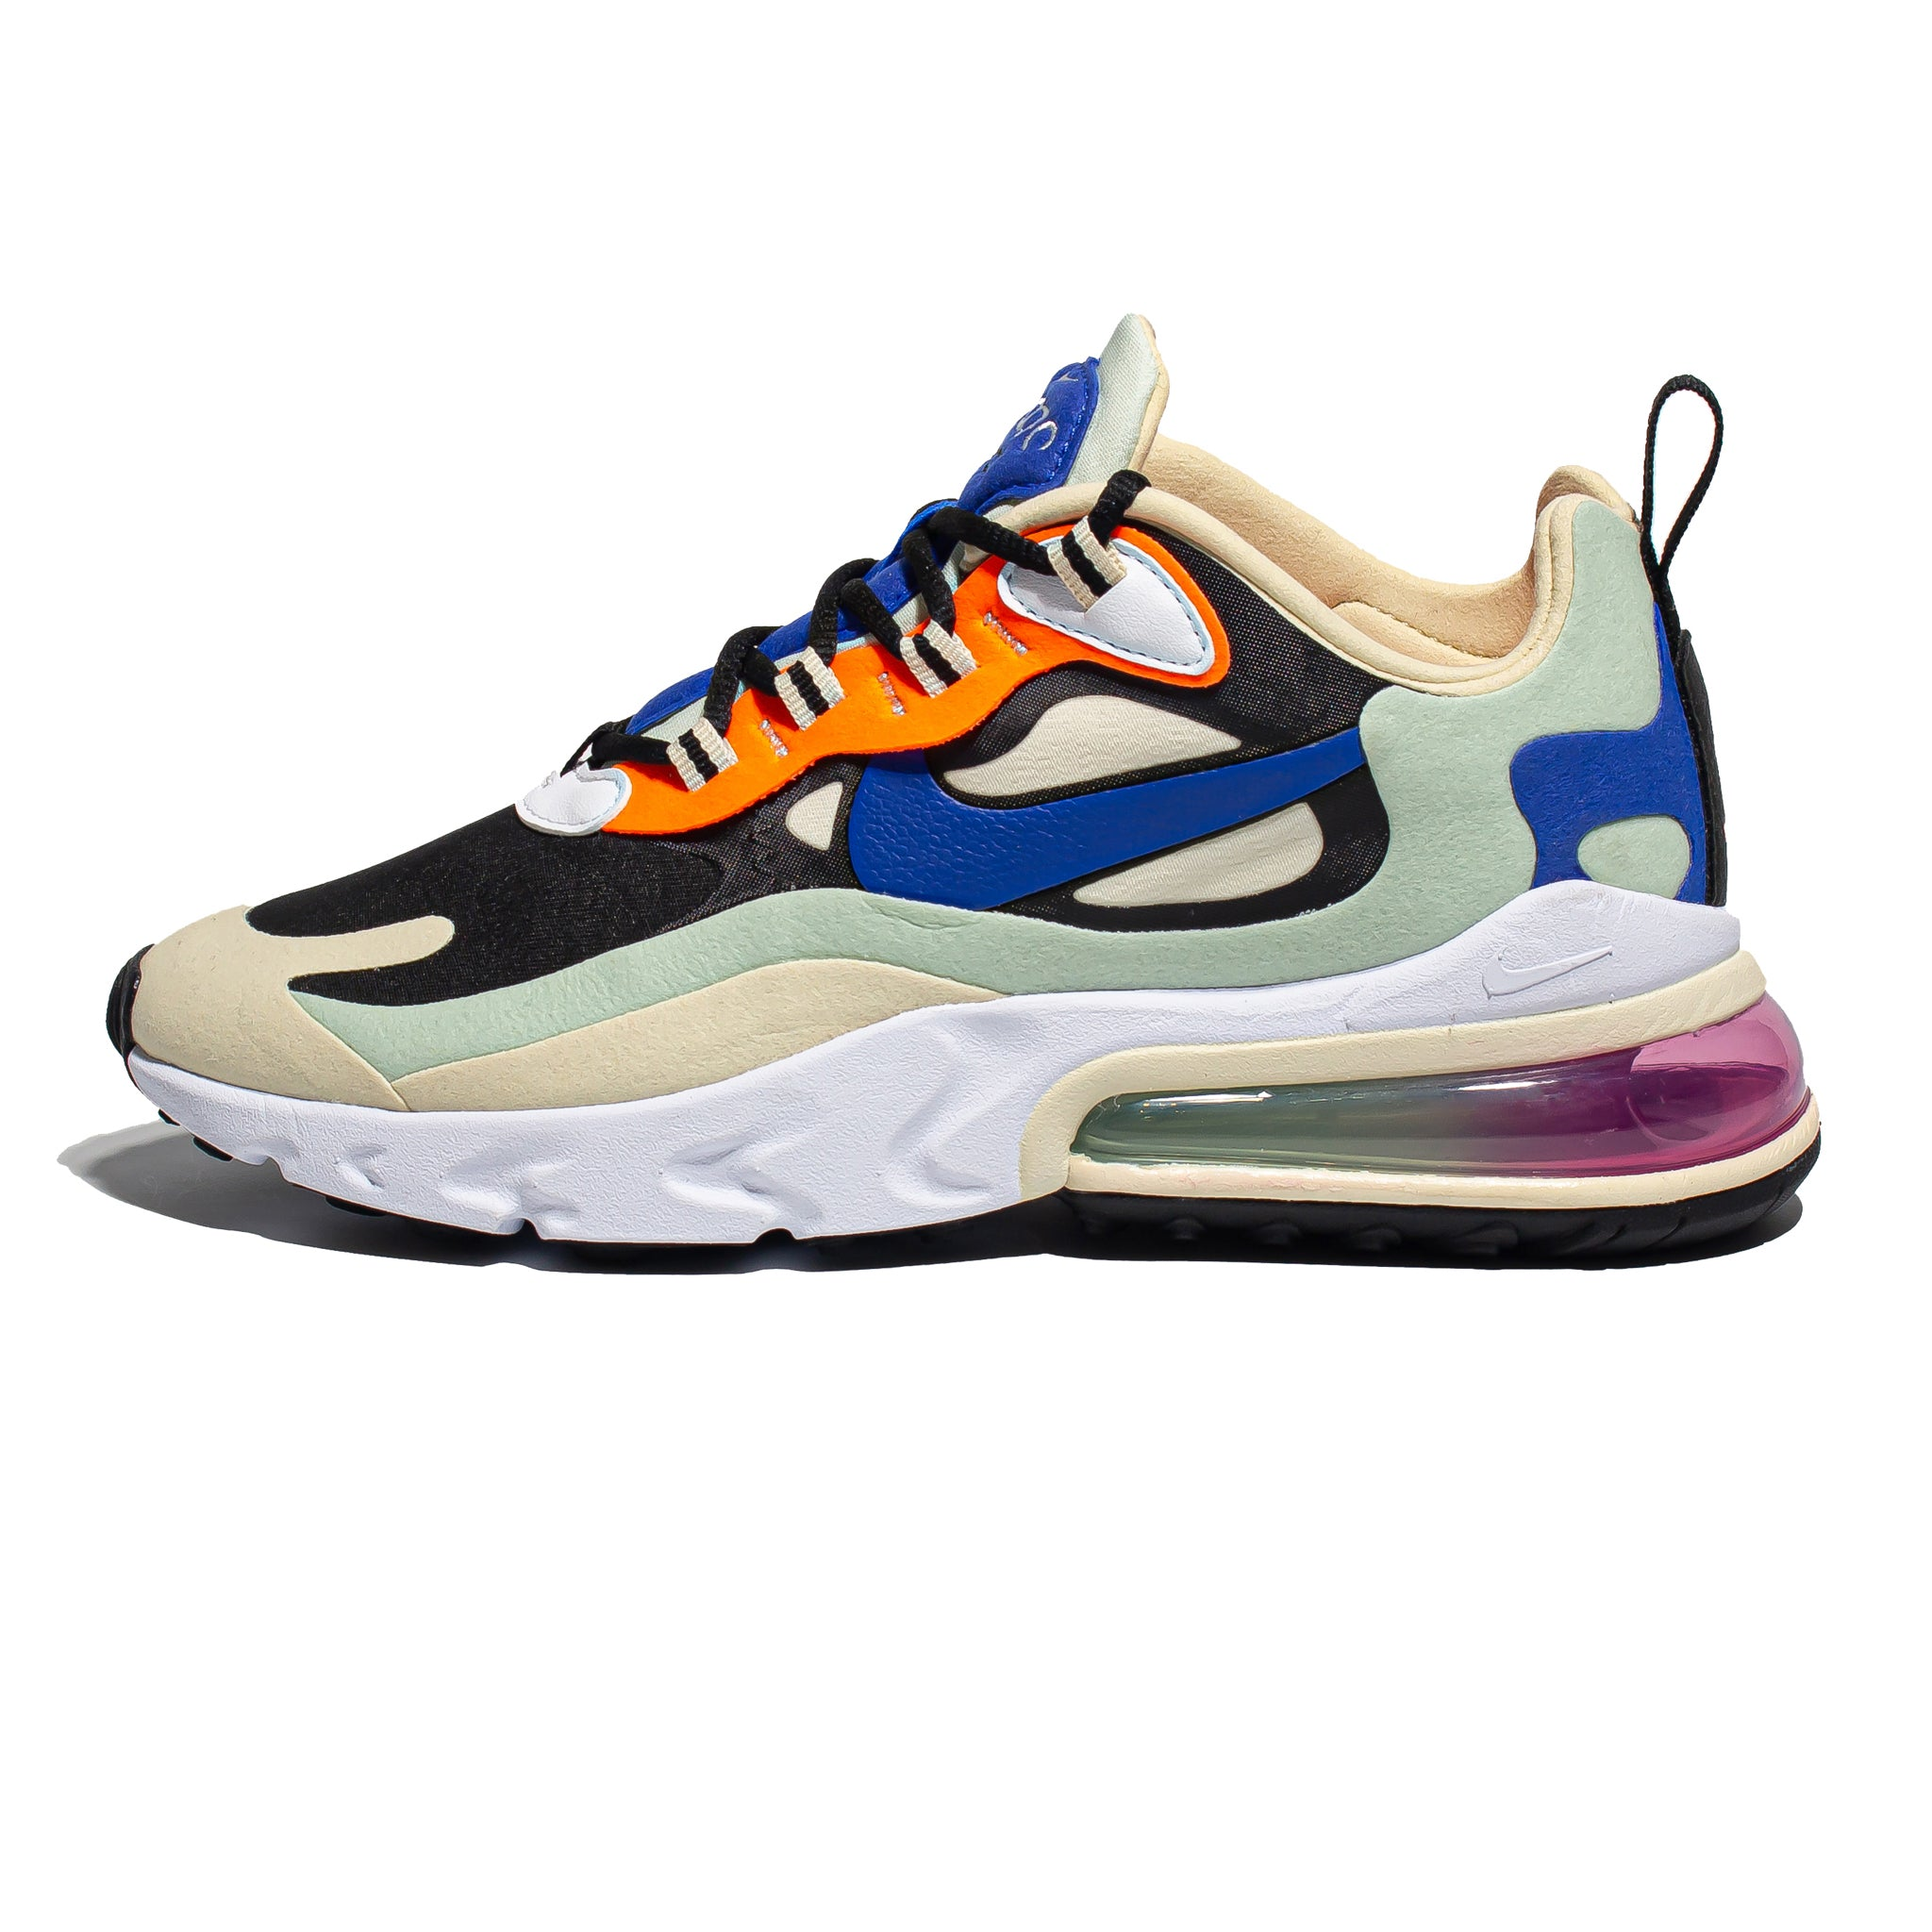 Nike Air Max 270 React 'Mowabb'